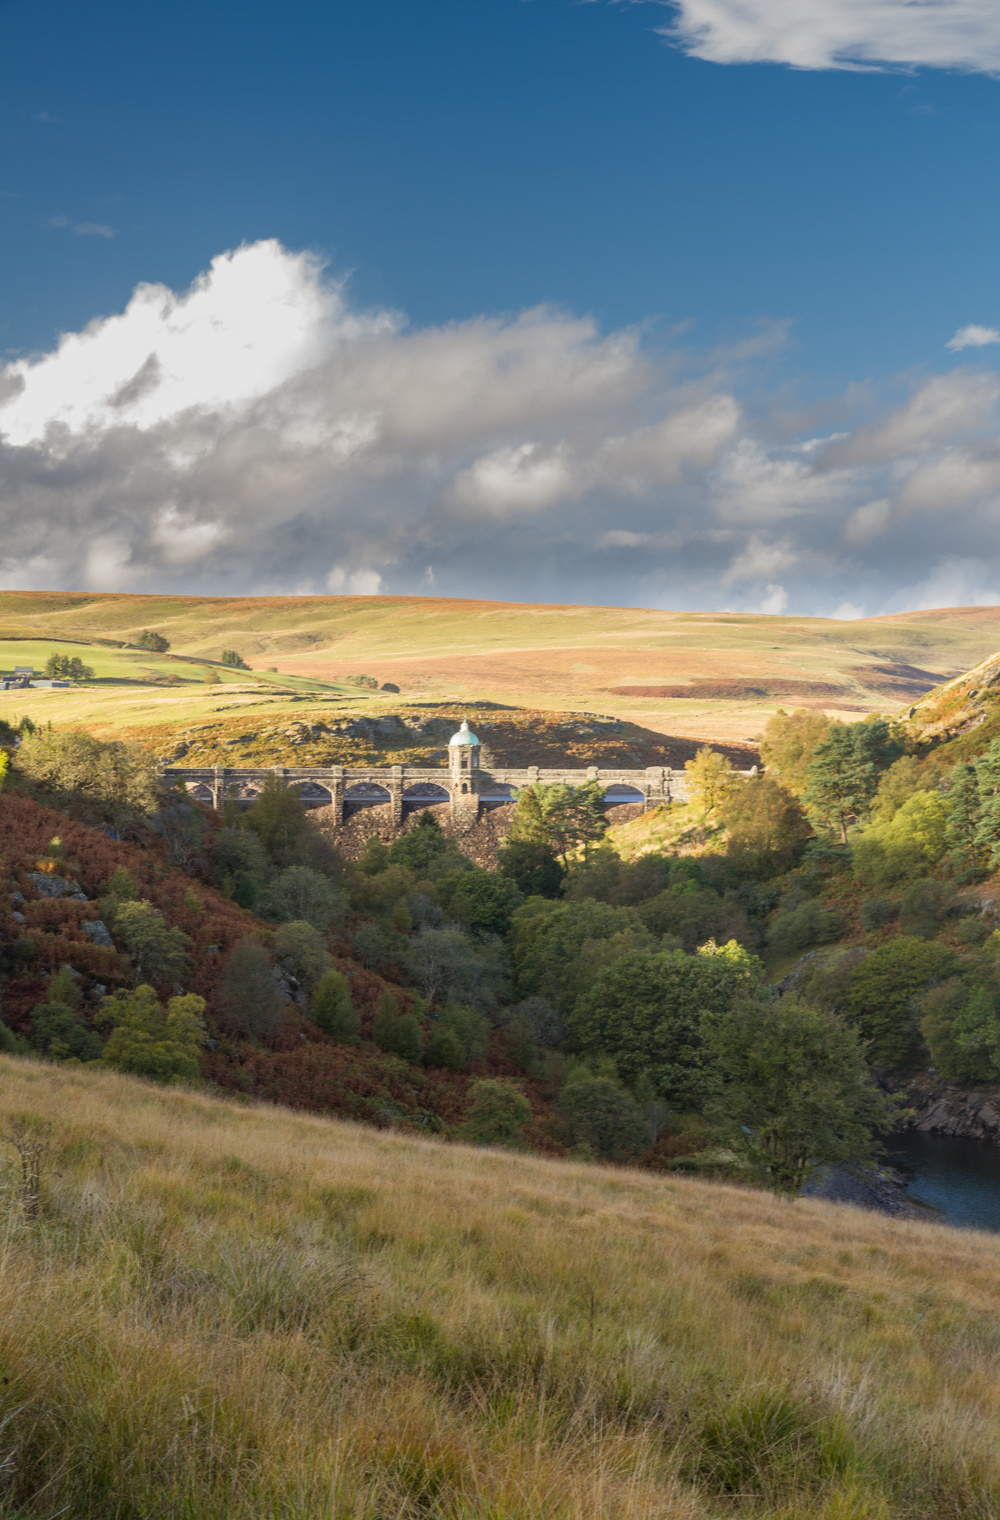 THE SURROUNDING AREA > We have collated some of the highlights and attractions of Rhayader and the surrounding area of Mid Wales.